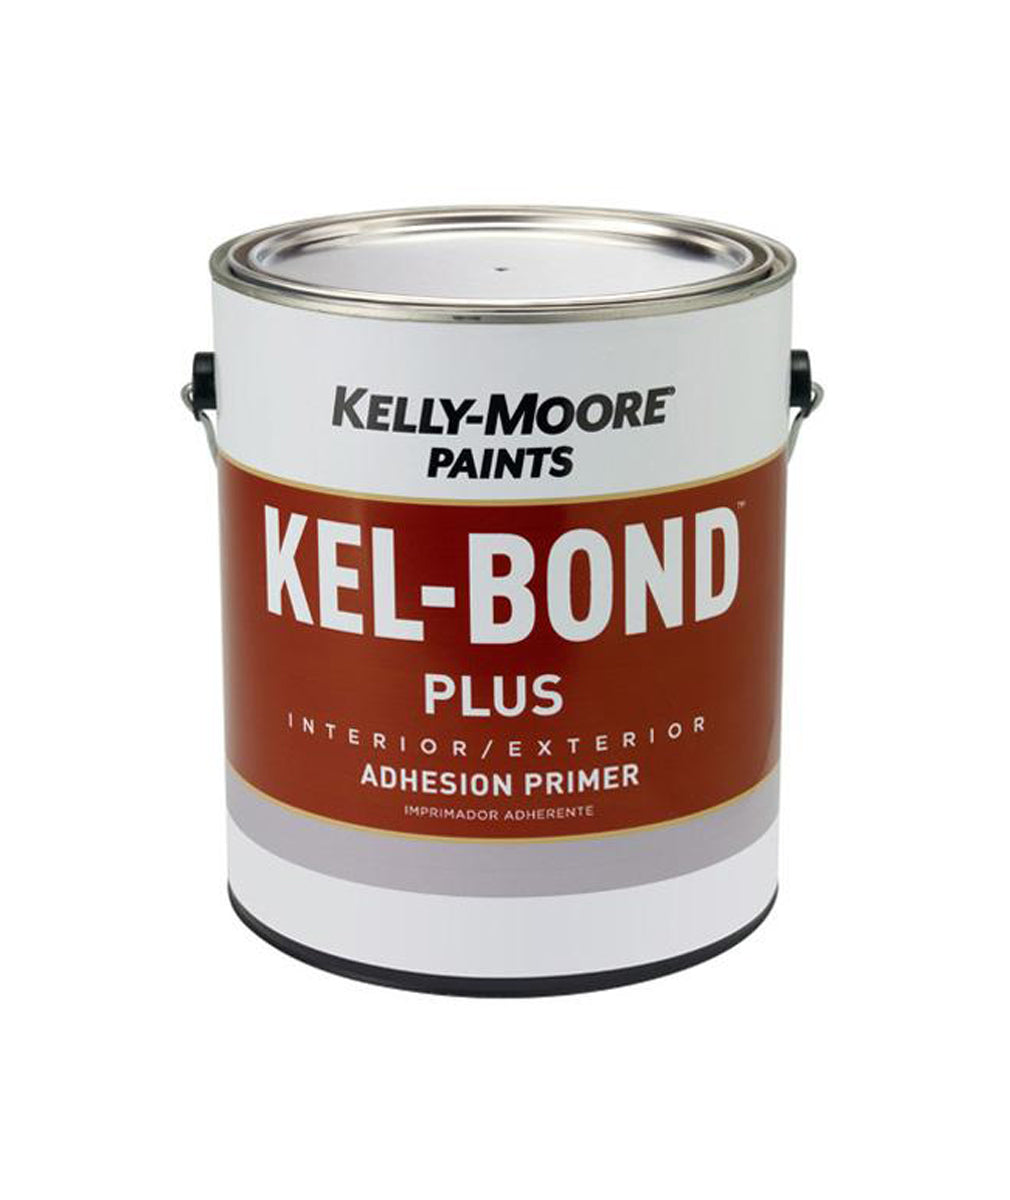 Kelly-Moore Paints Kel-Bond Plus Primer, available at Kelly-Moore Paints for Contractors.